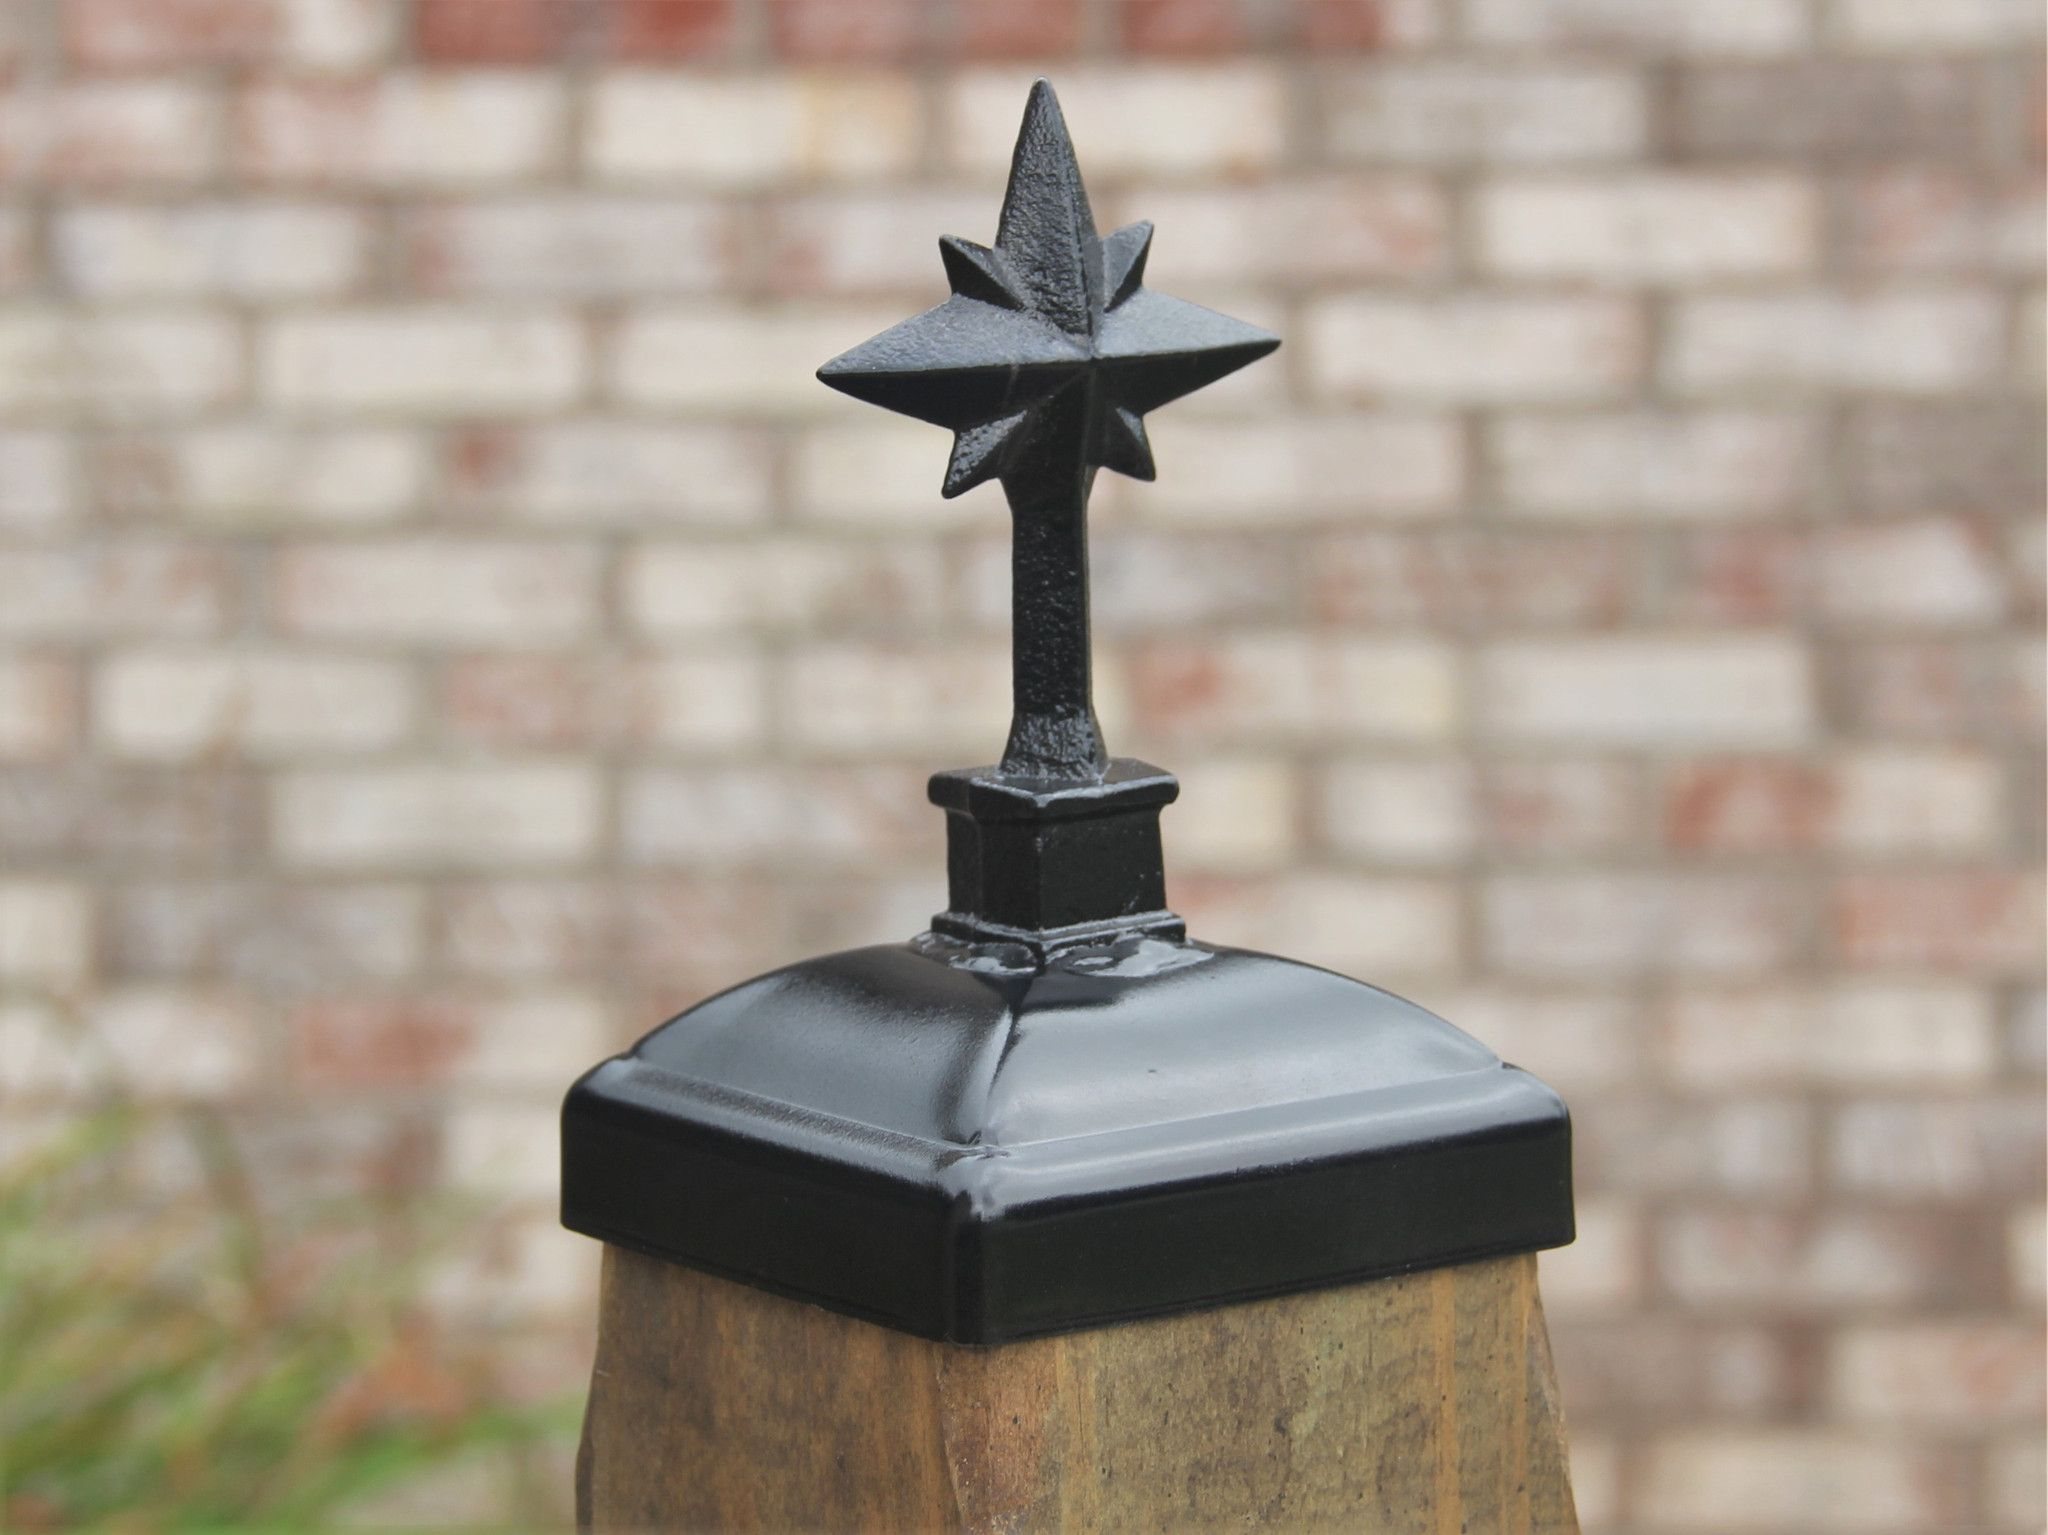 Nativity Star Fence Post Cap Wrought Iron 4x4 Post Cap For Wood Post Fence Post Caps Post Cap Wrought Iron Fences